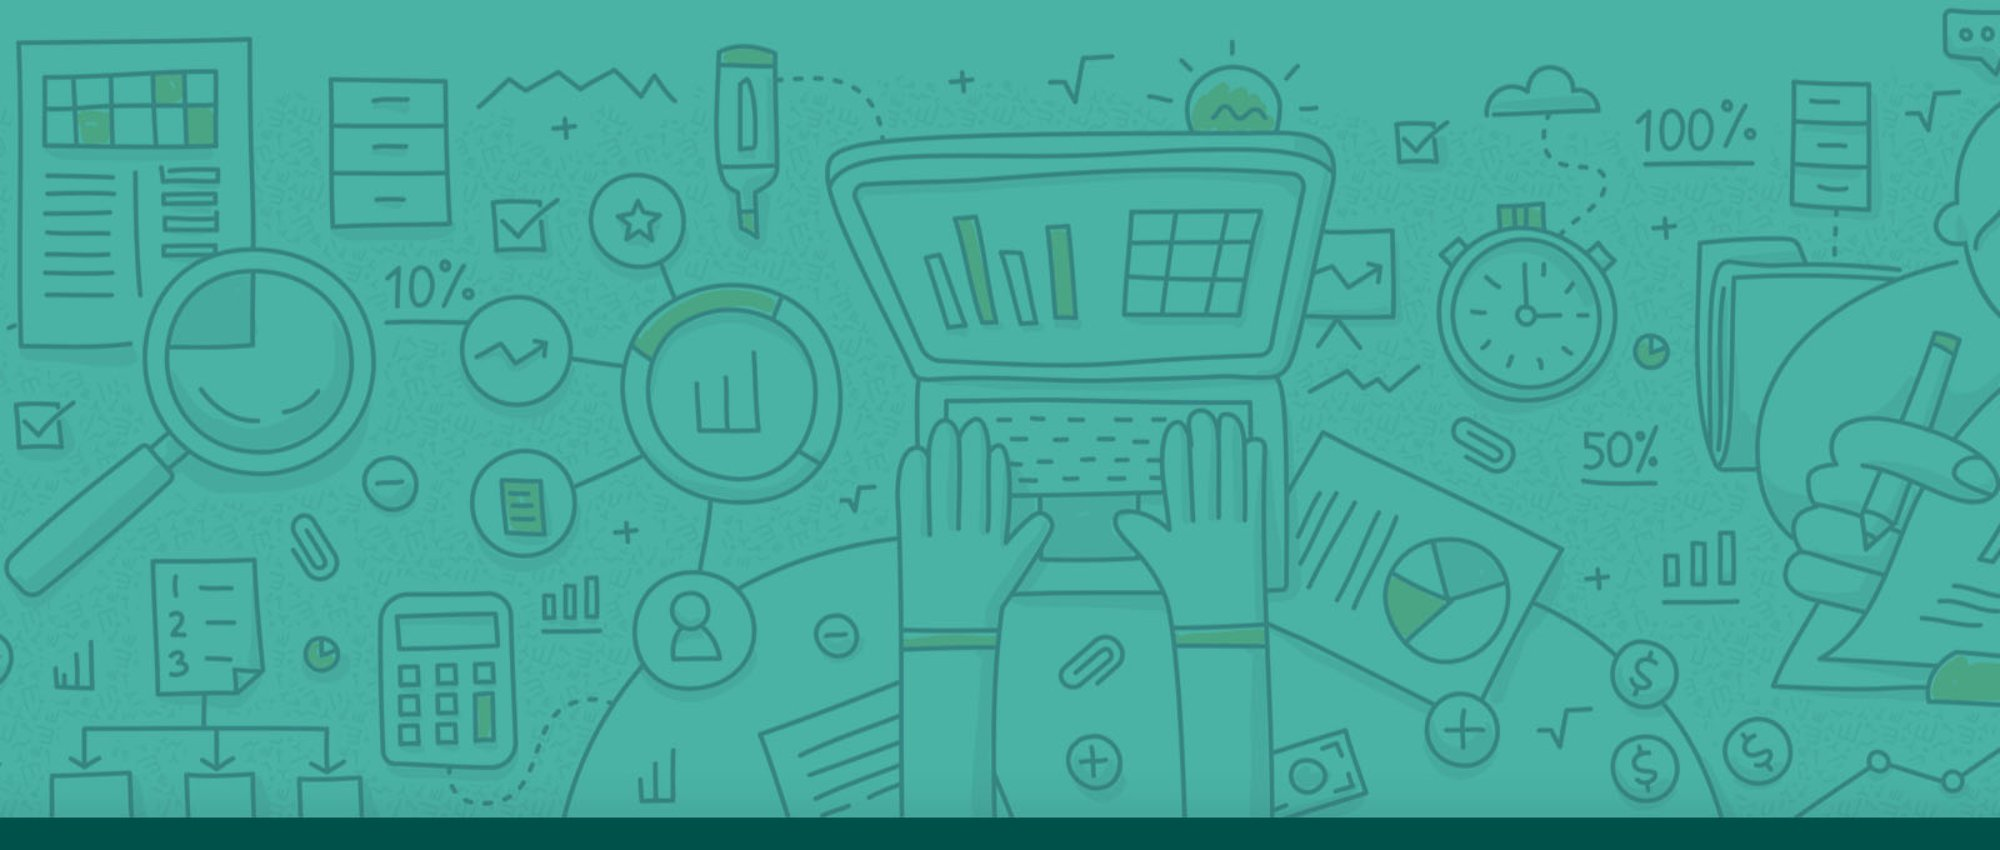 An Automation That Works: Employee Engagement & Productivity